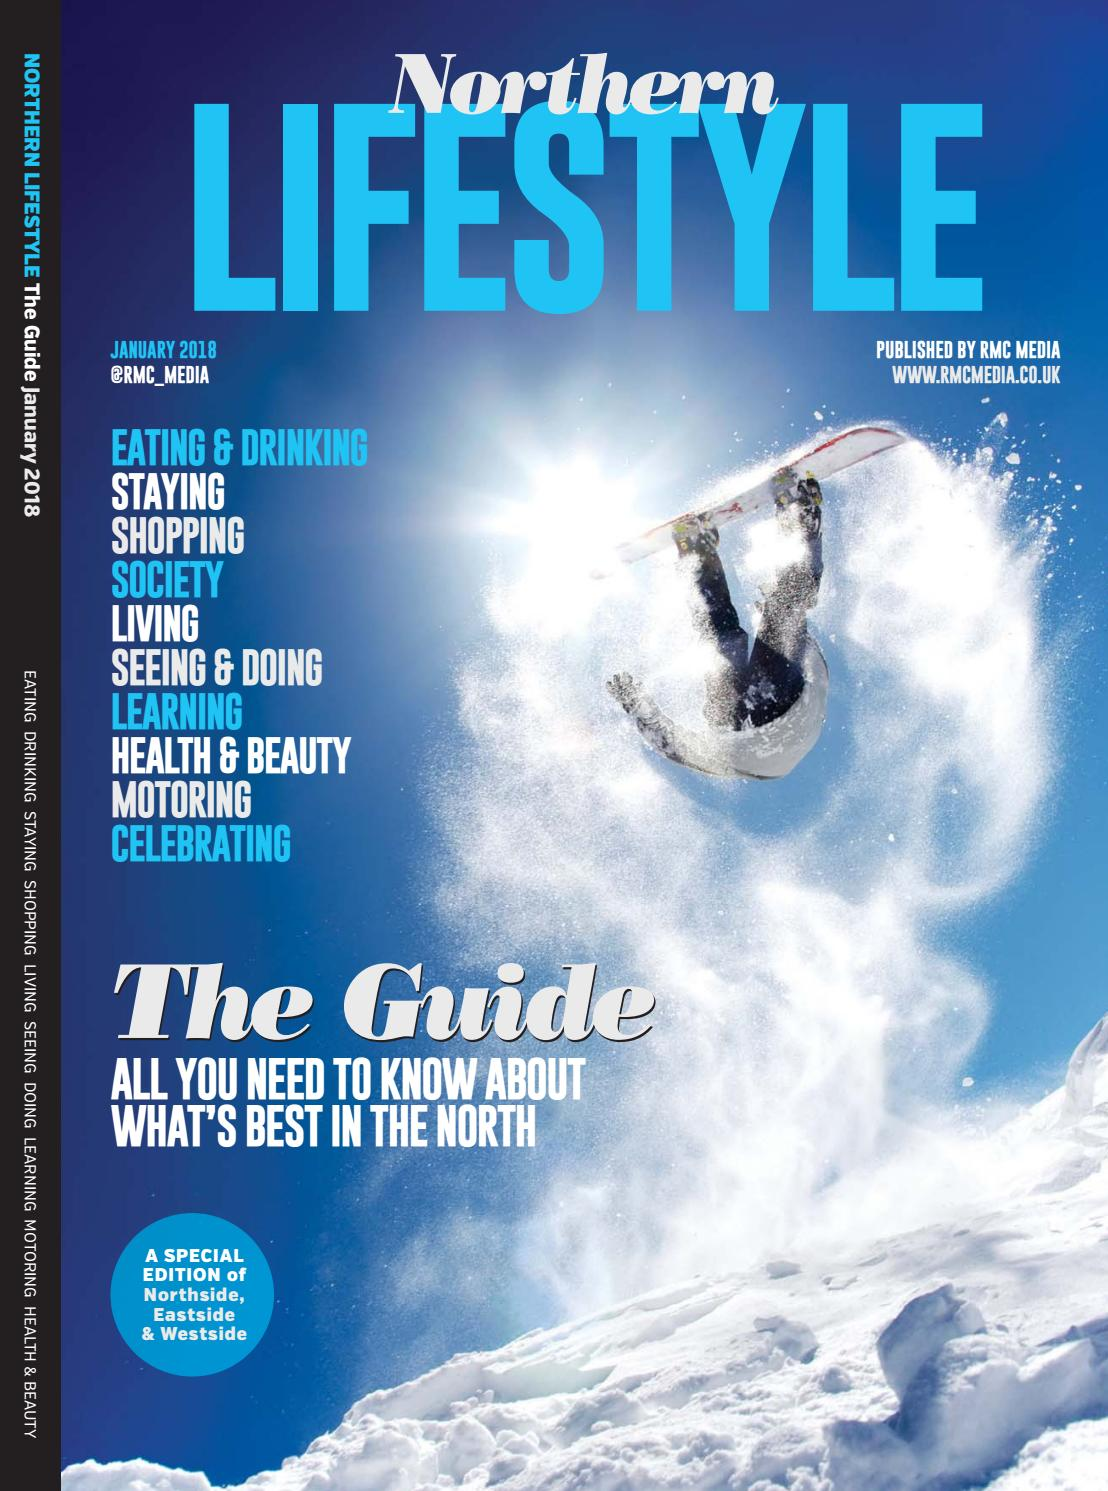 Northern Lifestyle 2018 by RMC Media - issuu